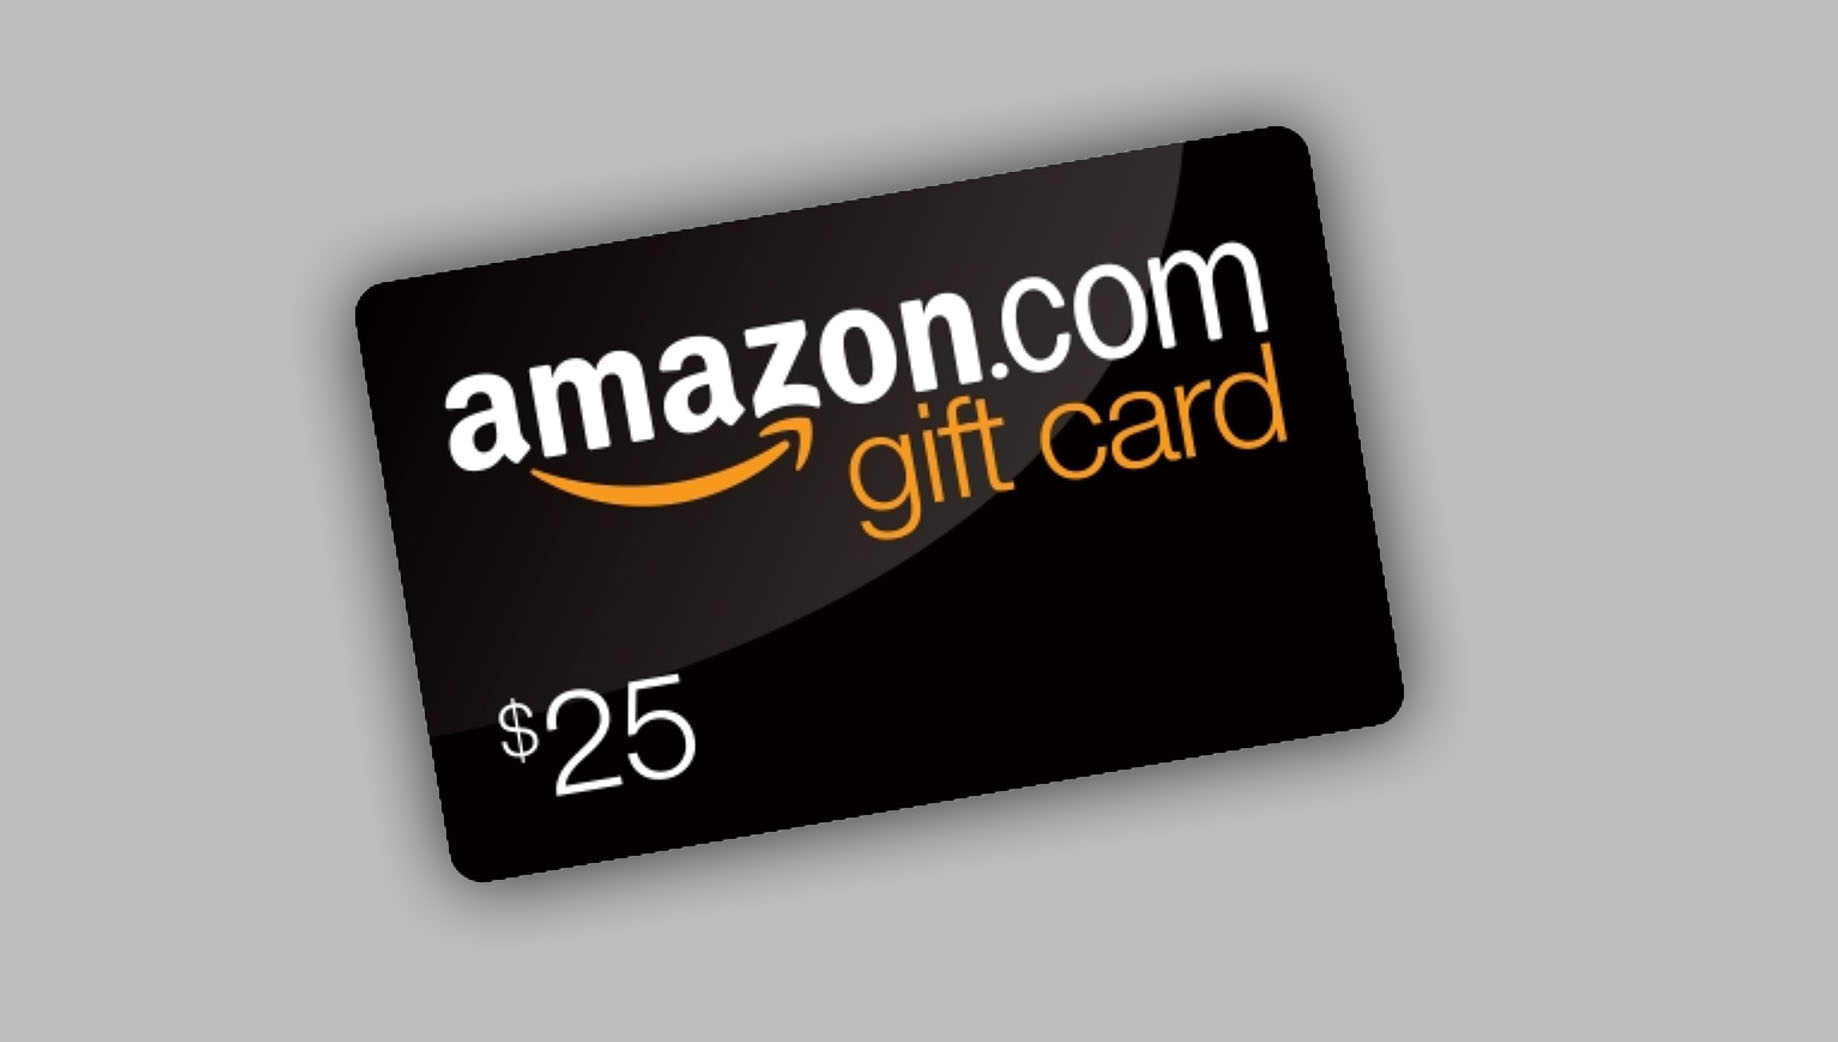 Giveaway: $25 Amazon gift card for reviewers